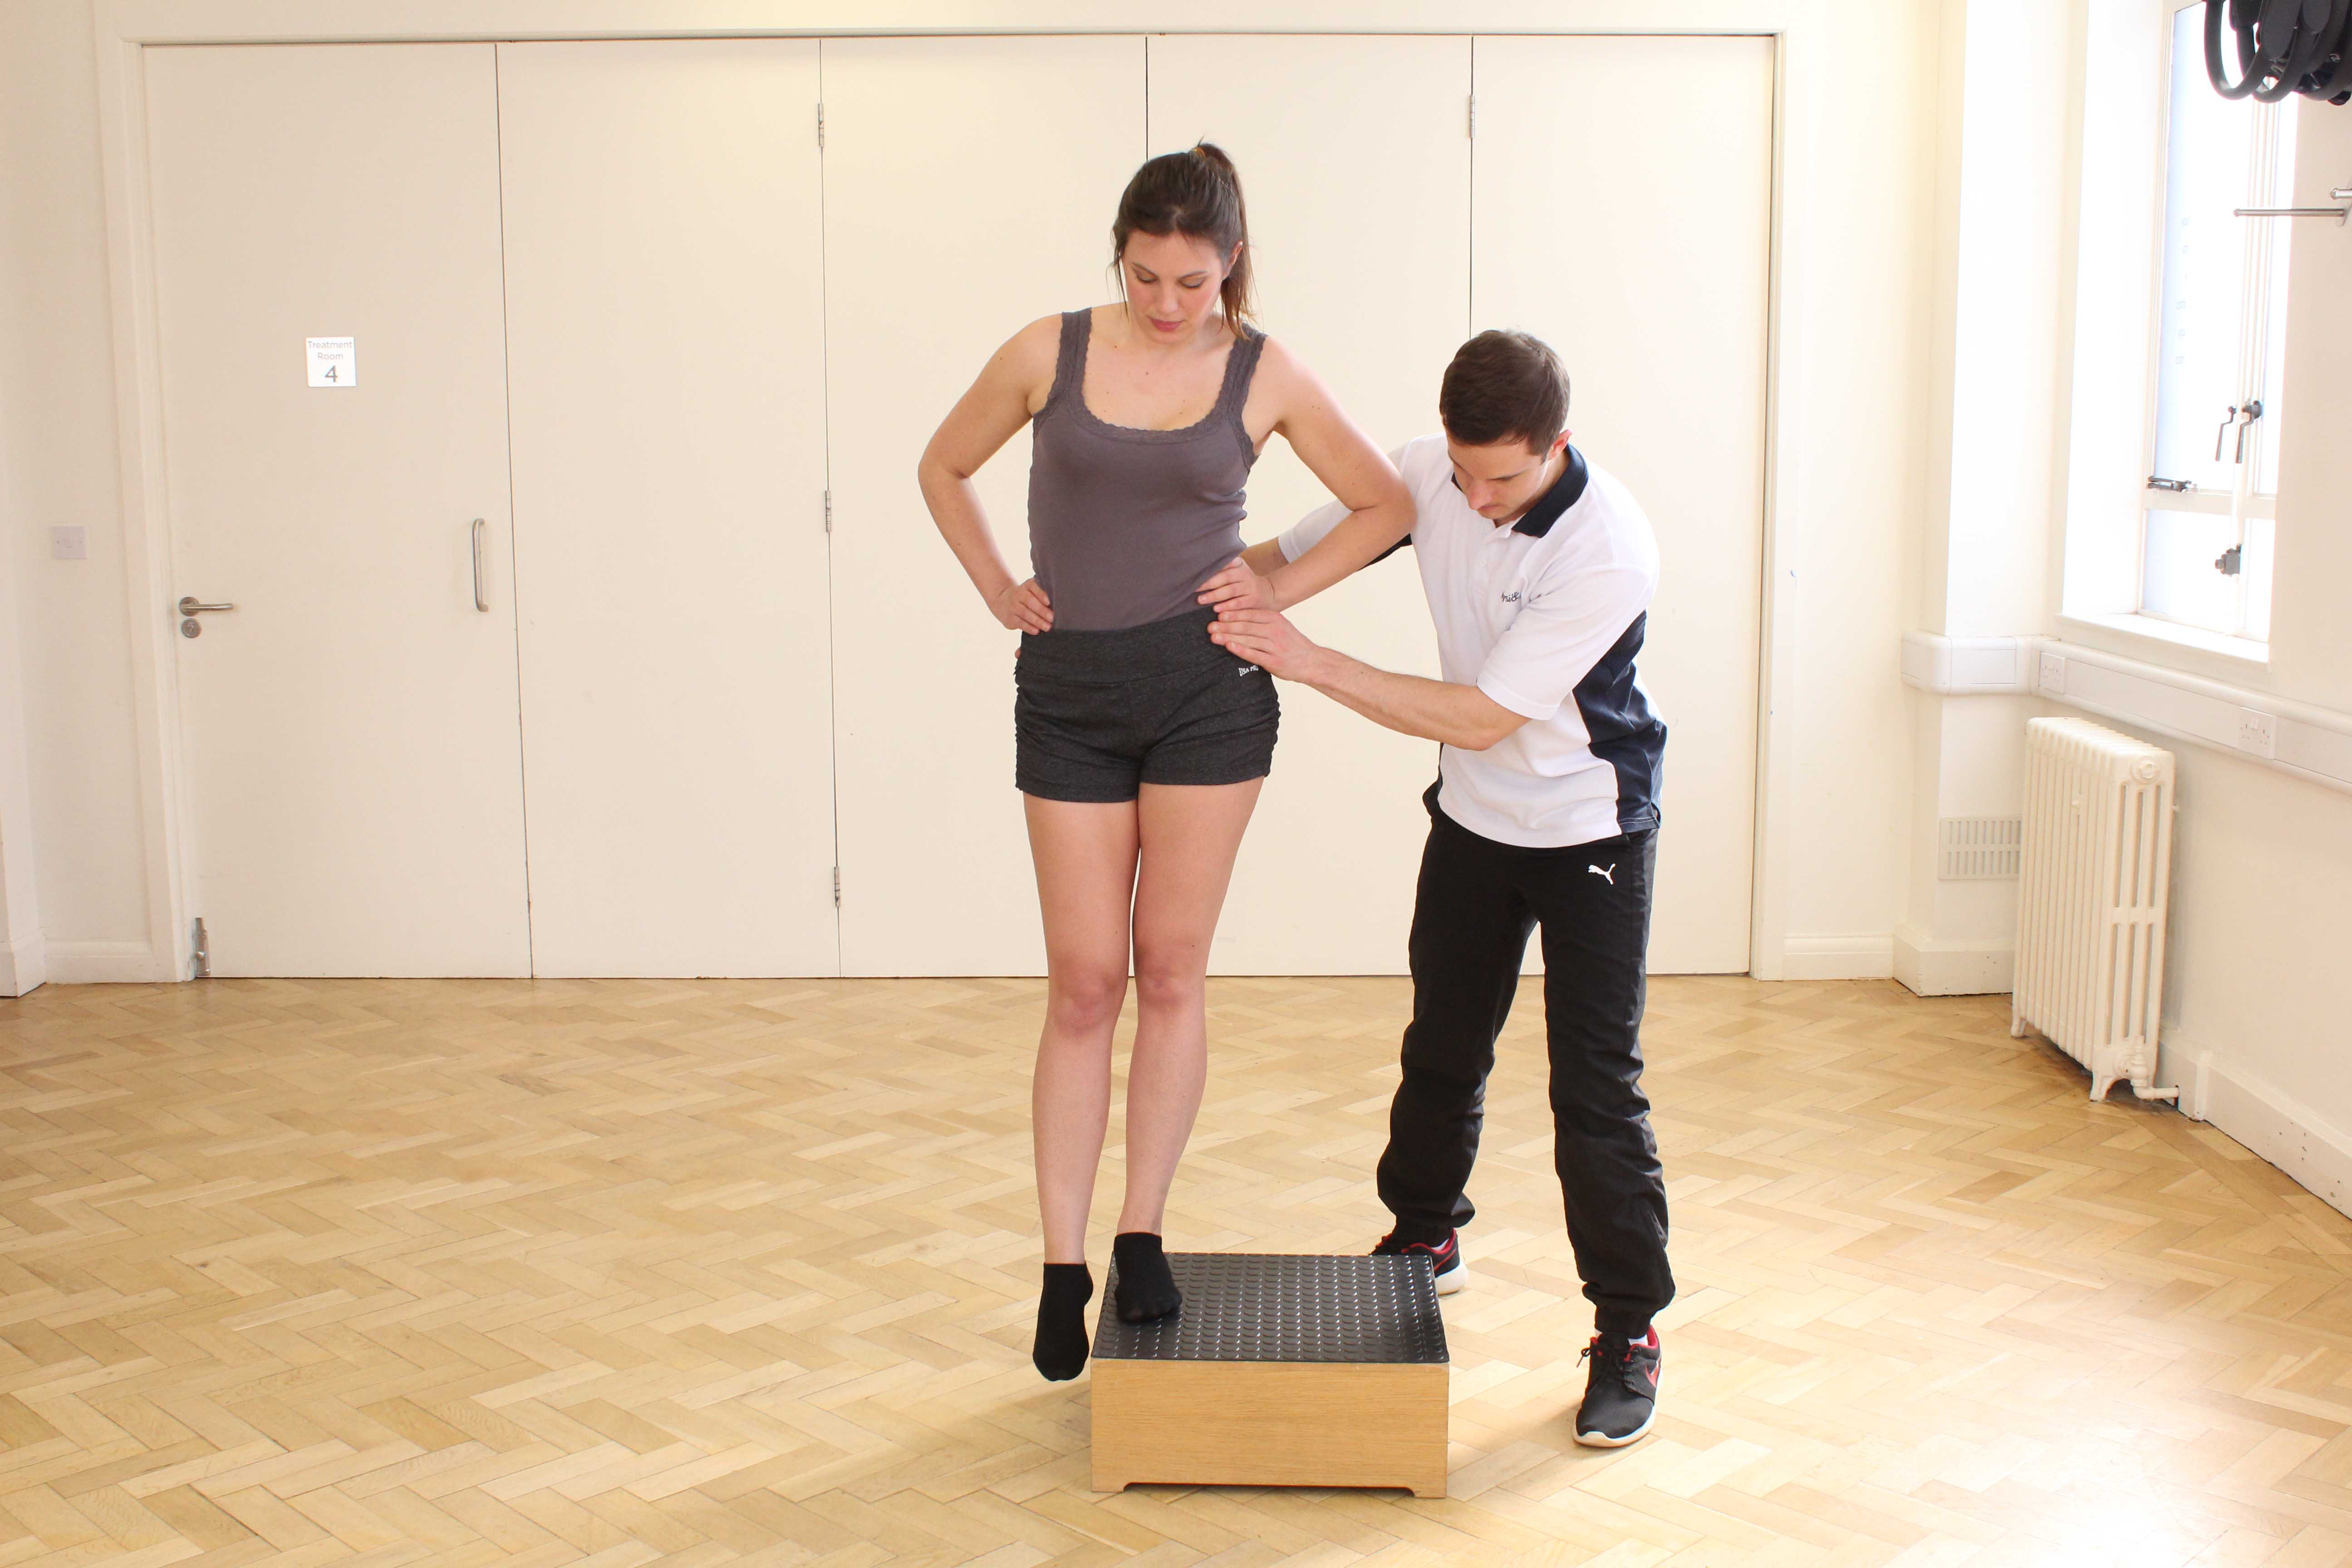 Hip stability and proprioception exercises led by an experienced Physiotherapist